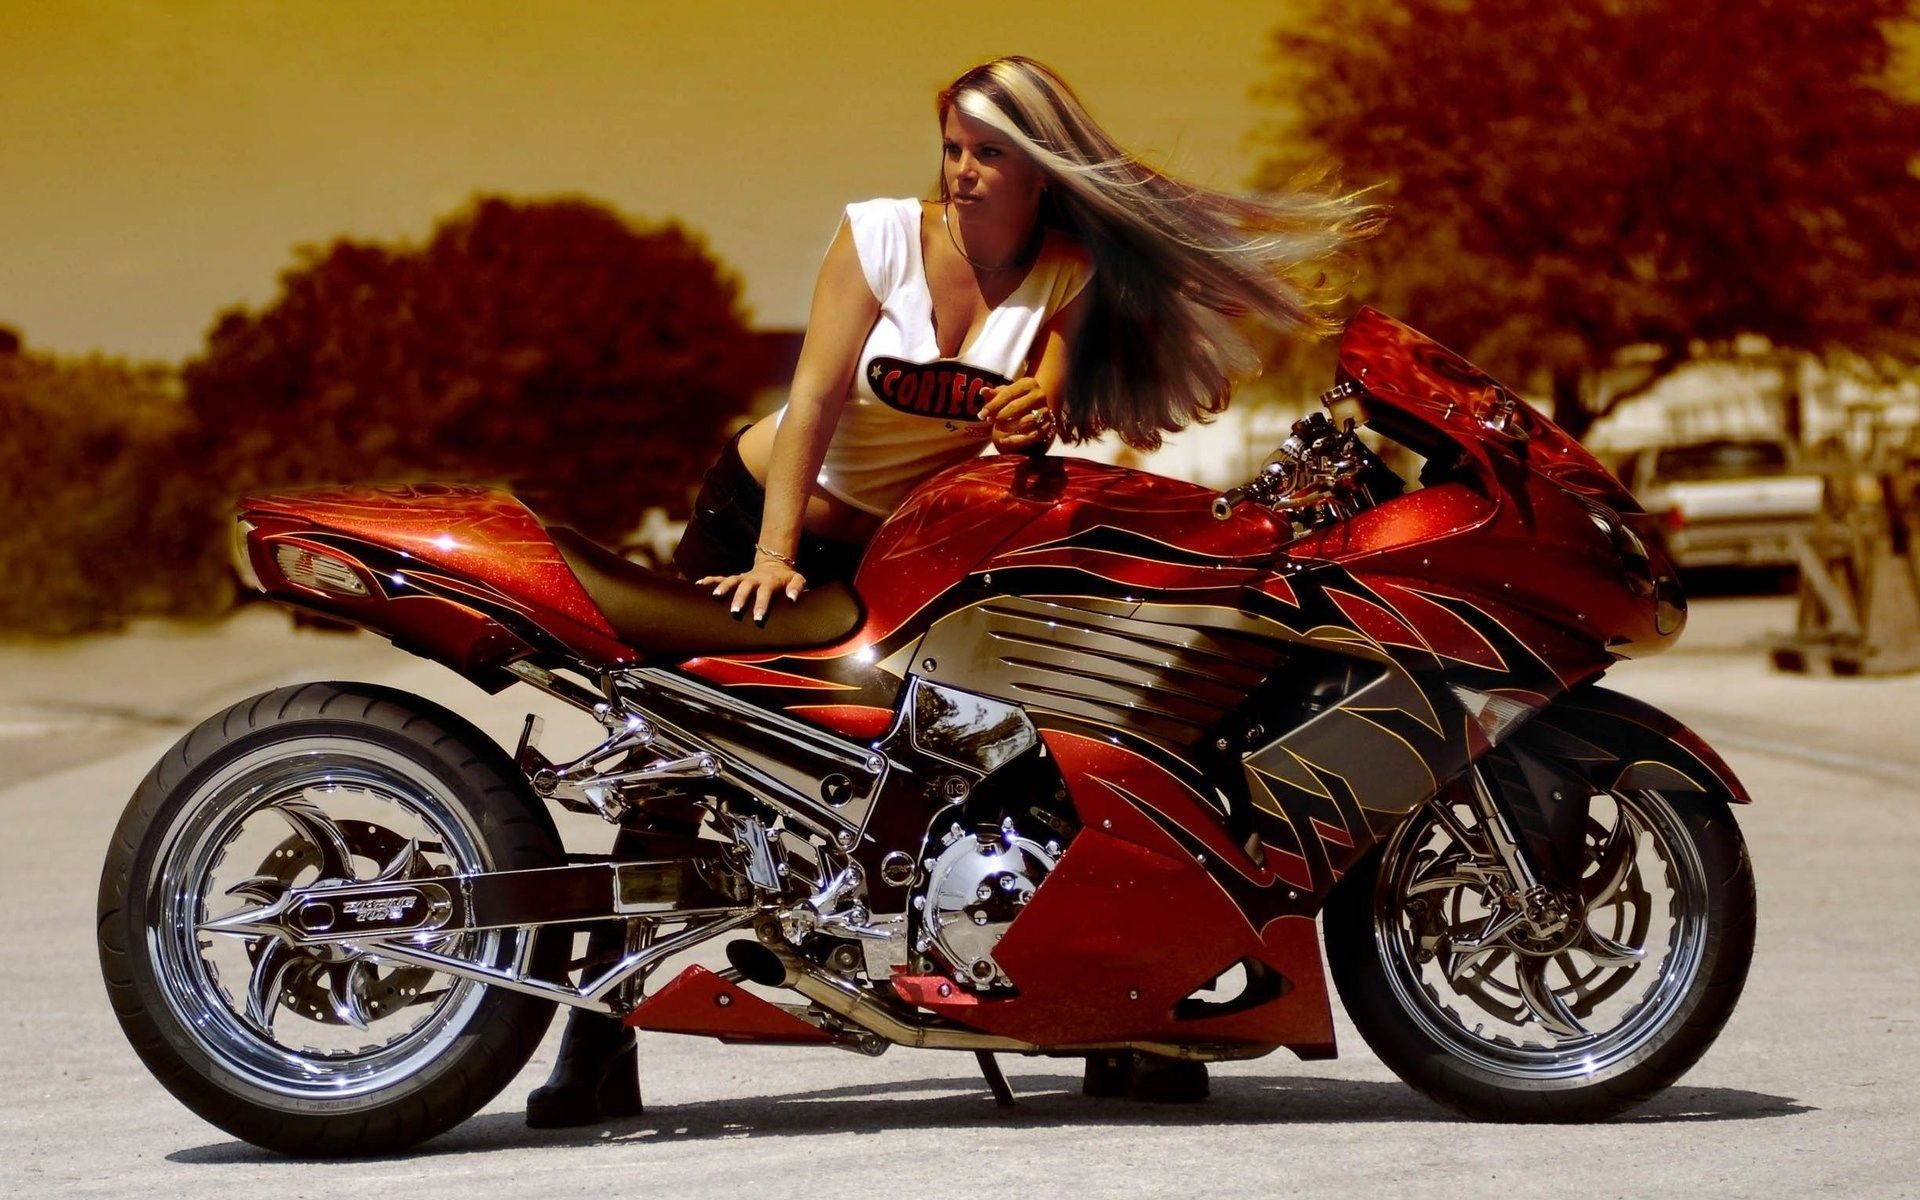 Free Screensaver Wallpapers For Girls And Motorcycles With Images